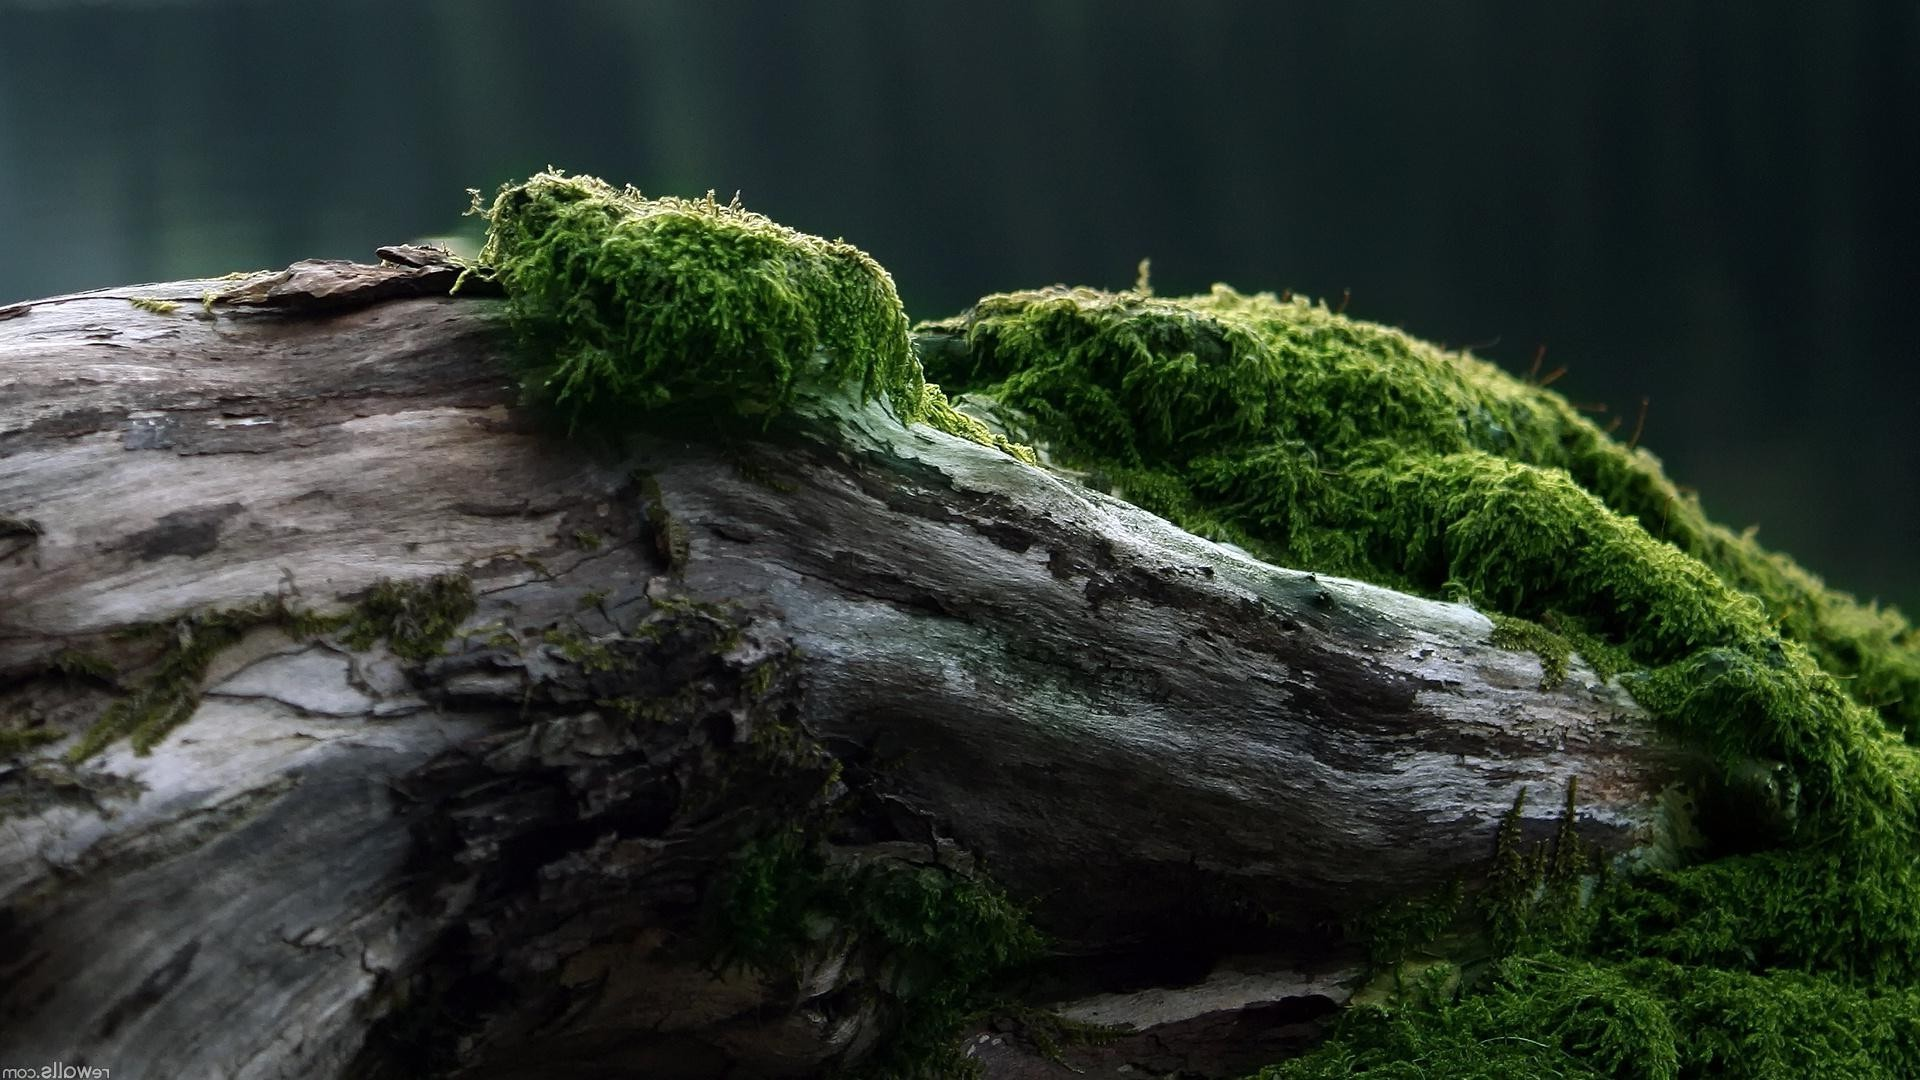 texture moss water nature outdoors wood landscape rock park leaf tree environment waterfall mossy travel river flora daylight summer